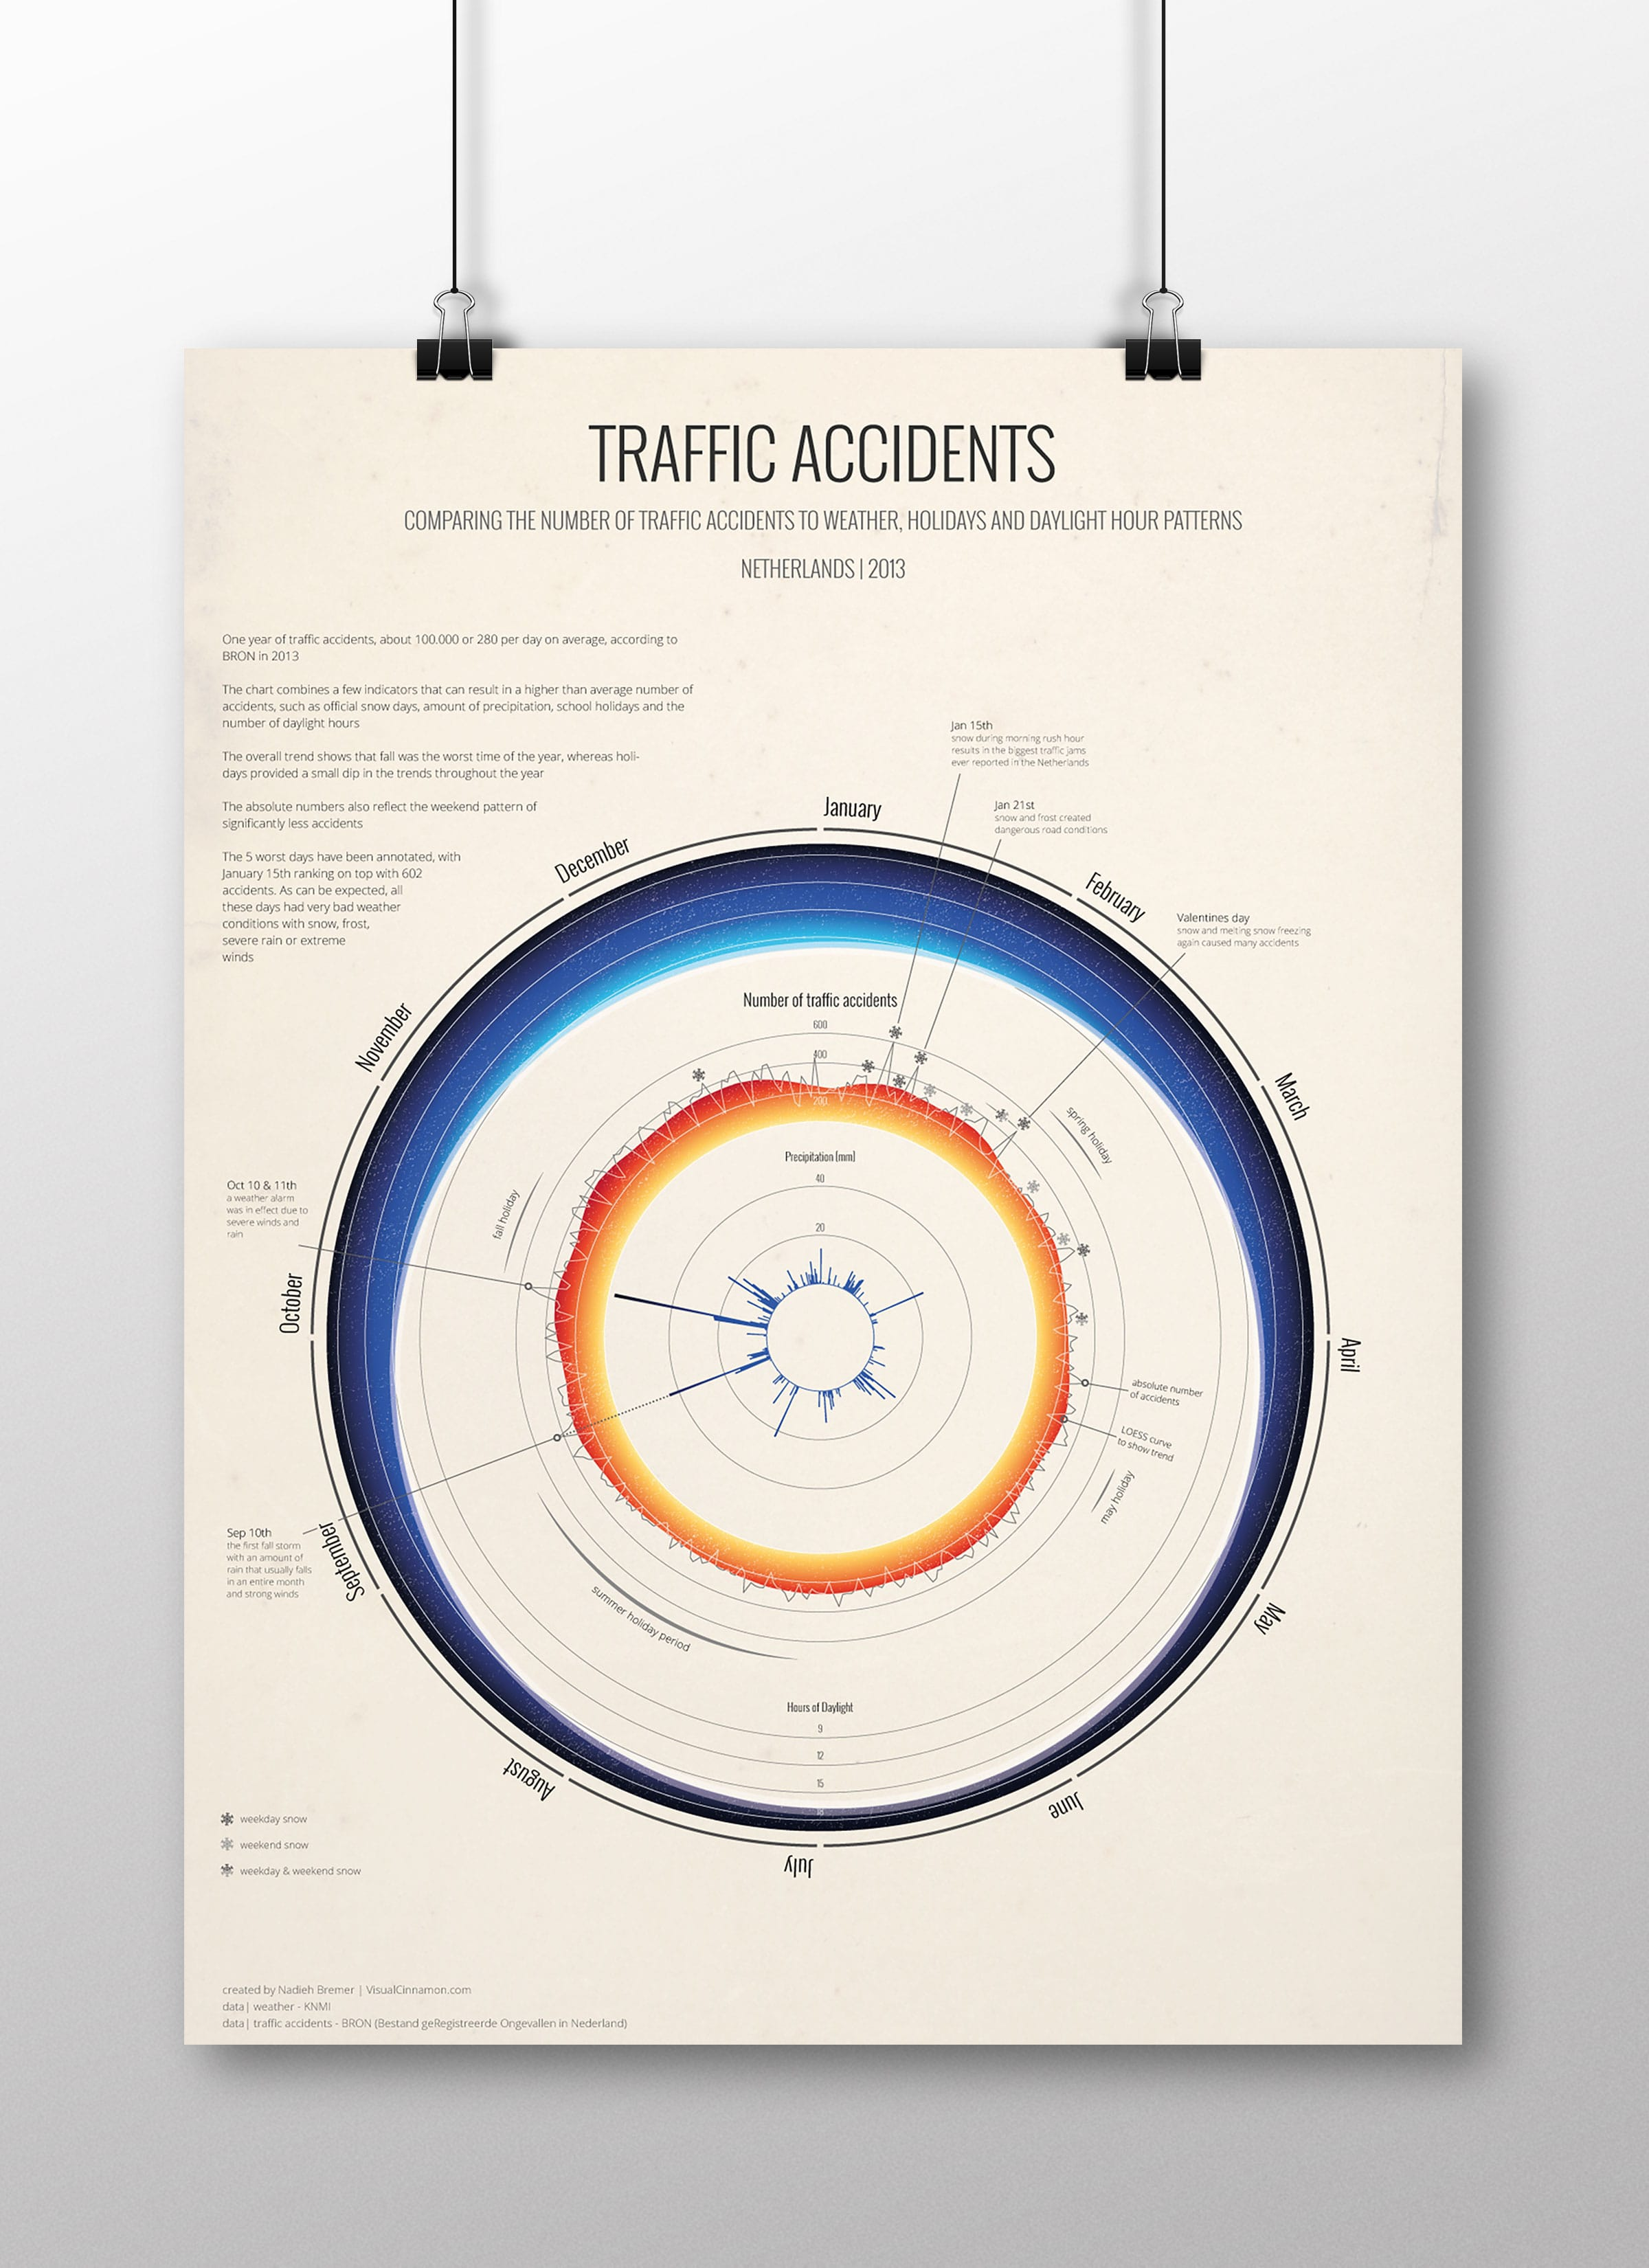 The complete 'Traffic Accidents' poster